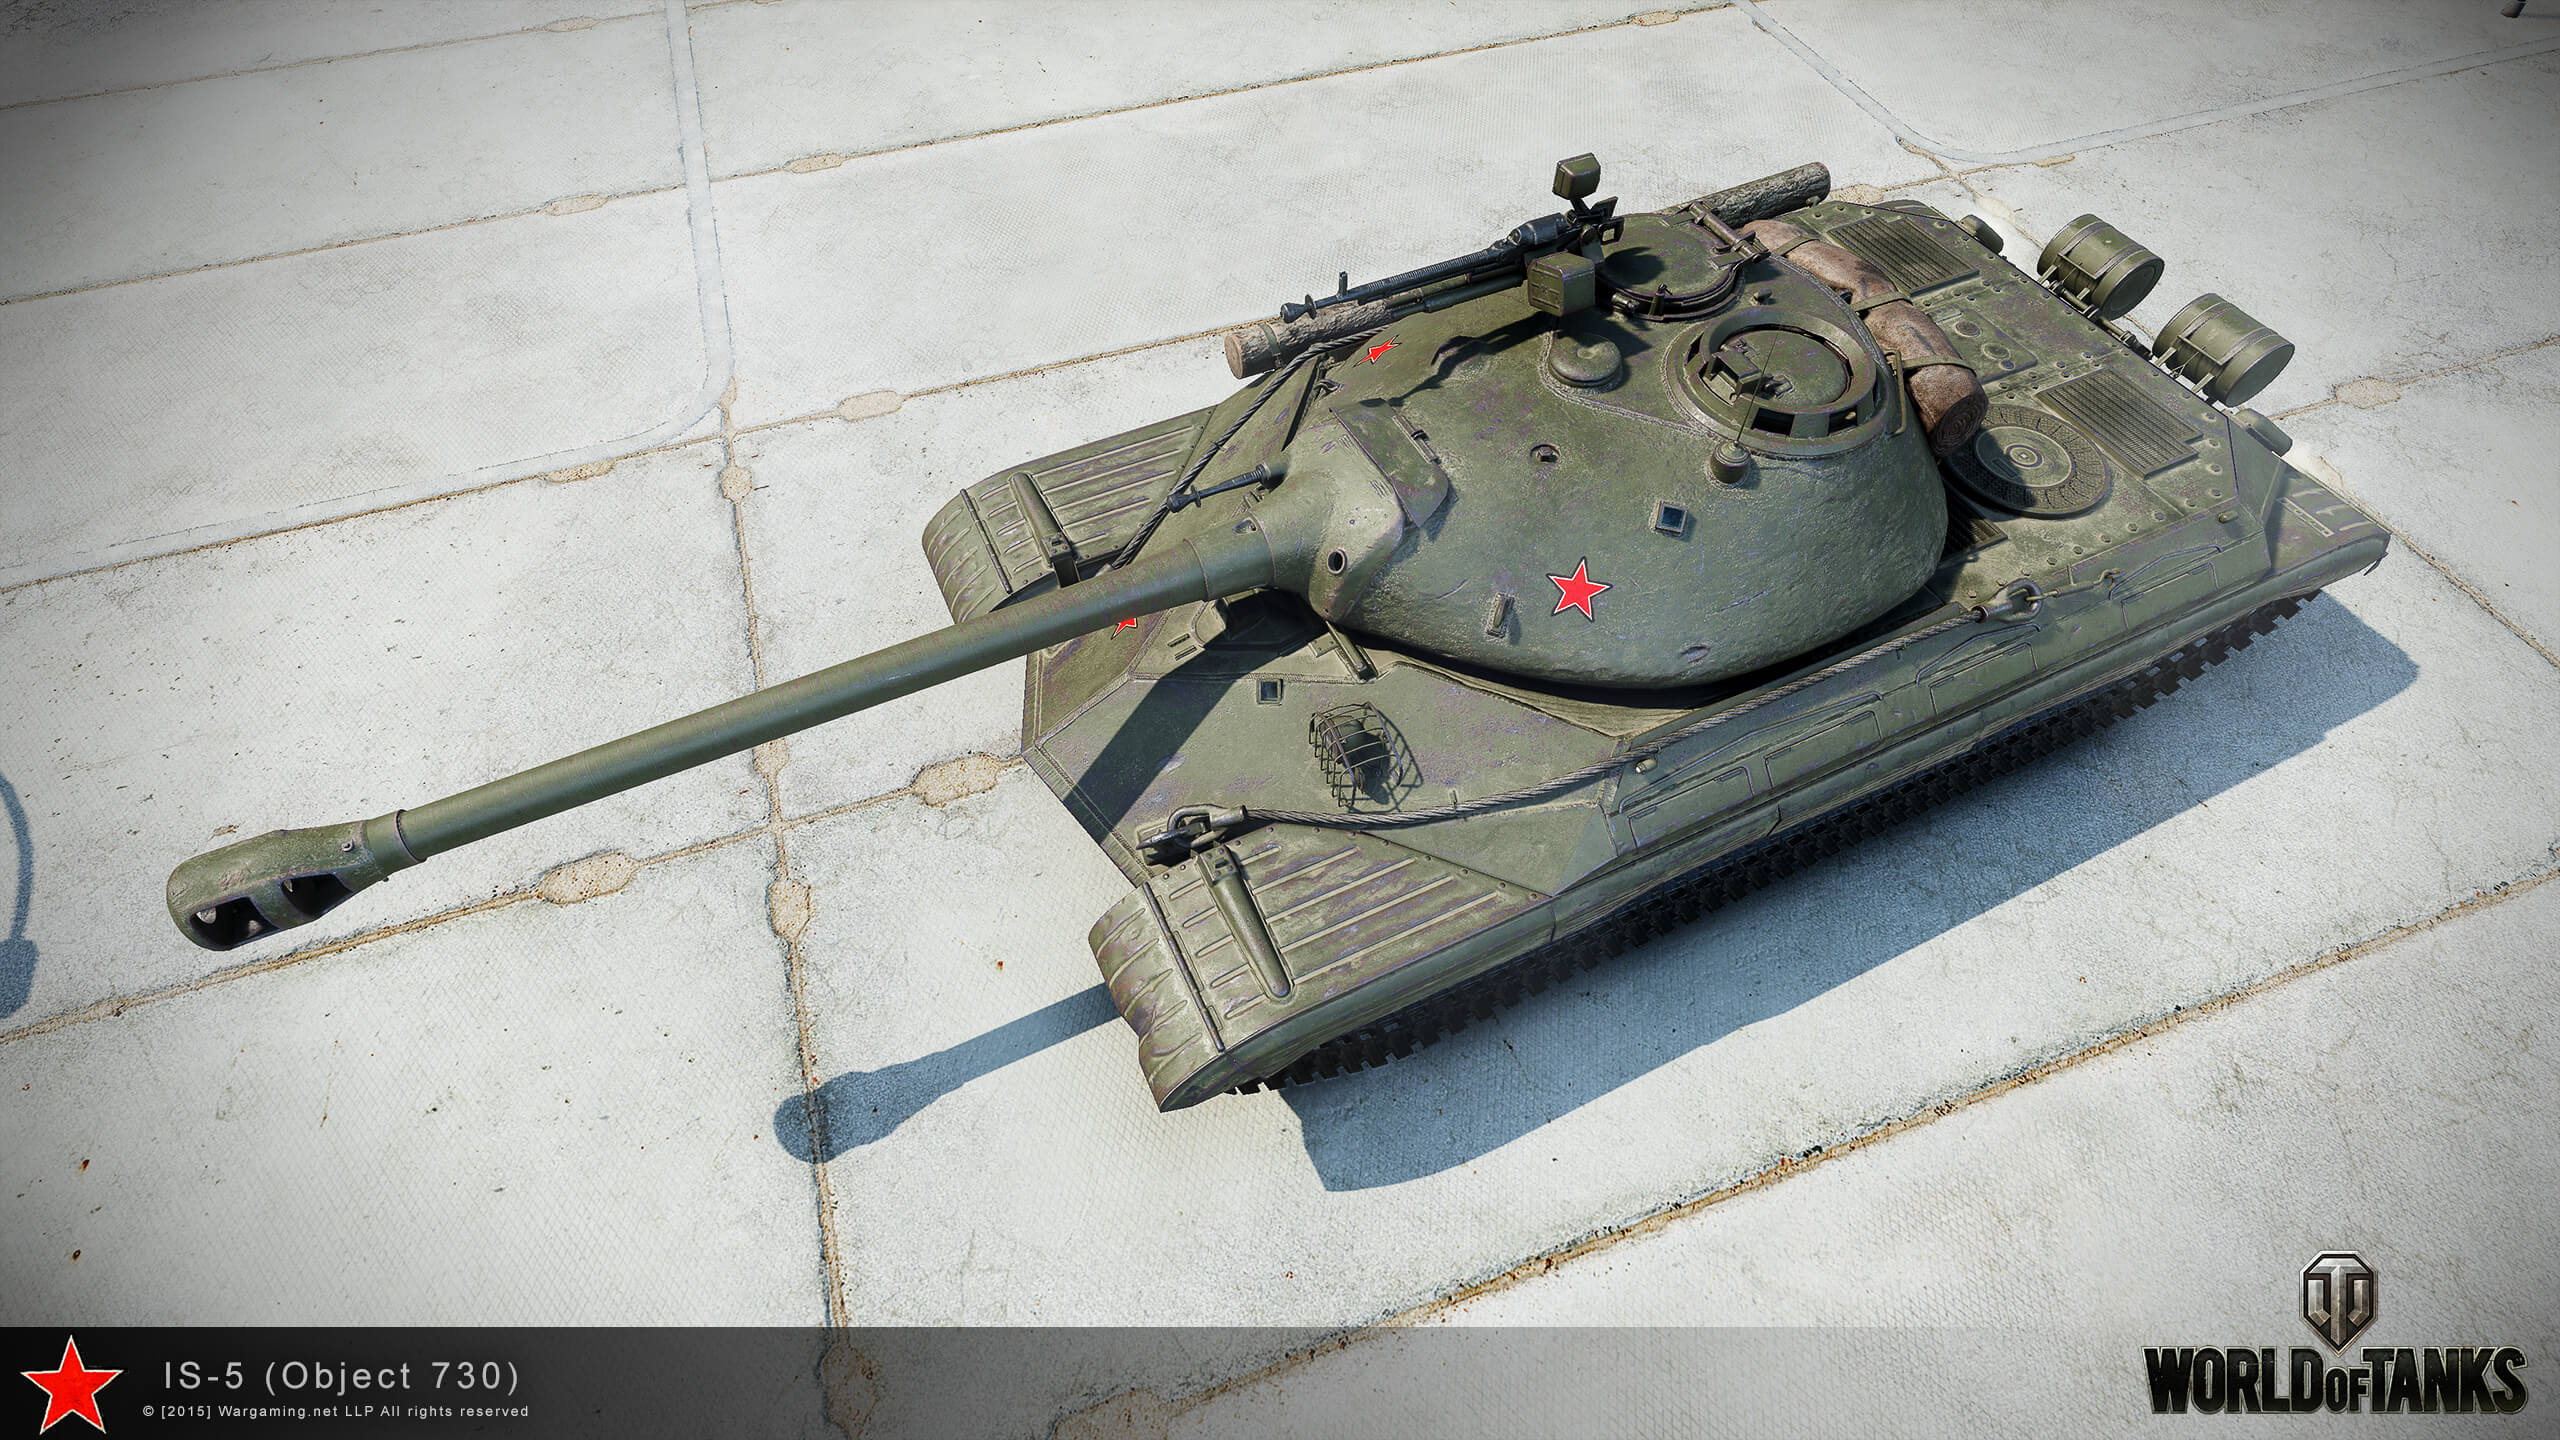 World of tanks как быстро получить танк 10 уровня